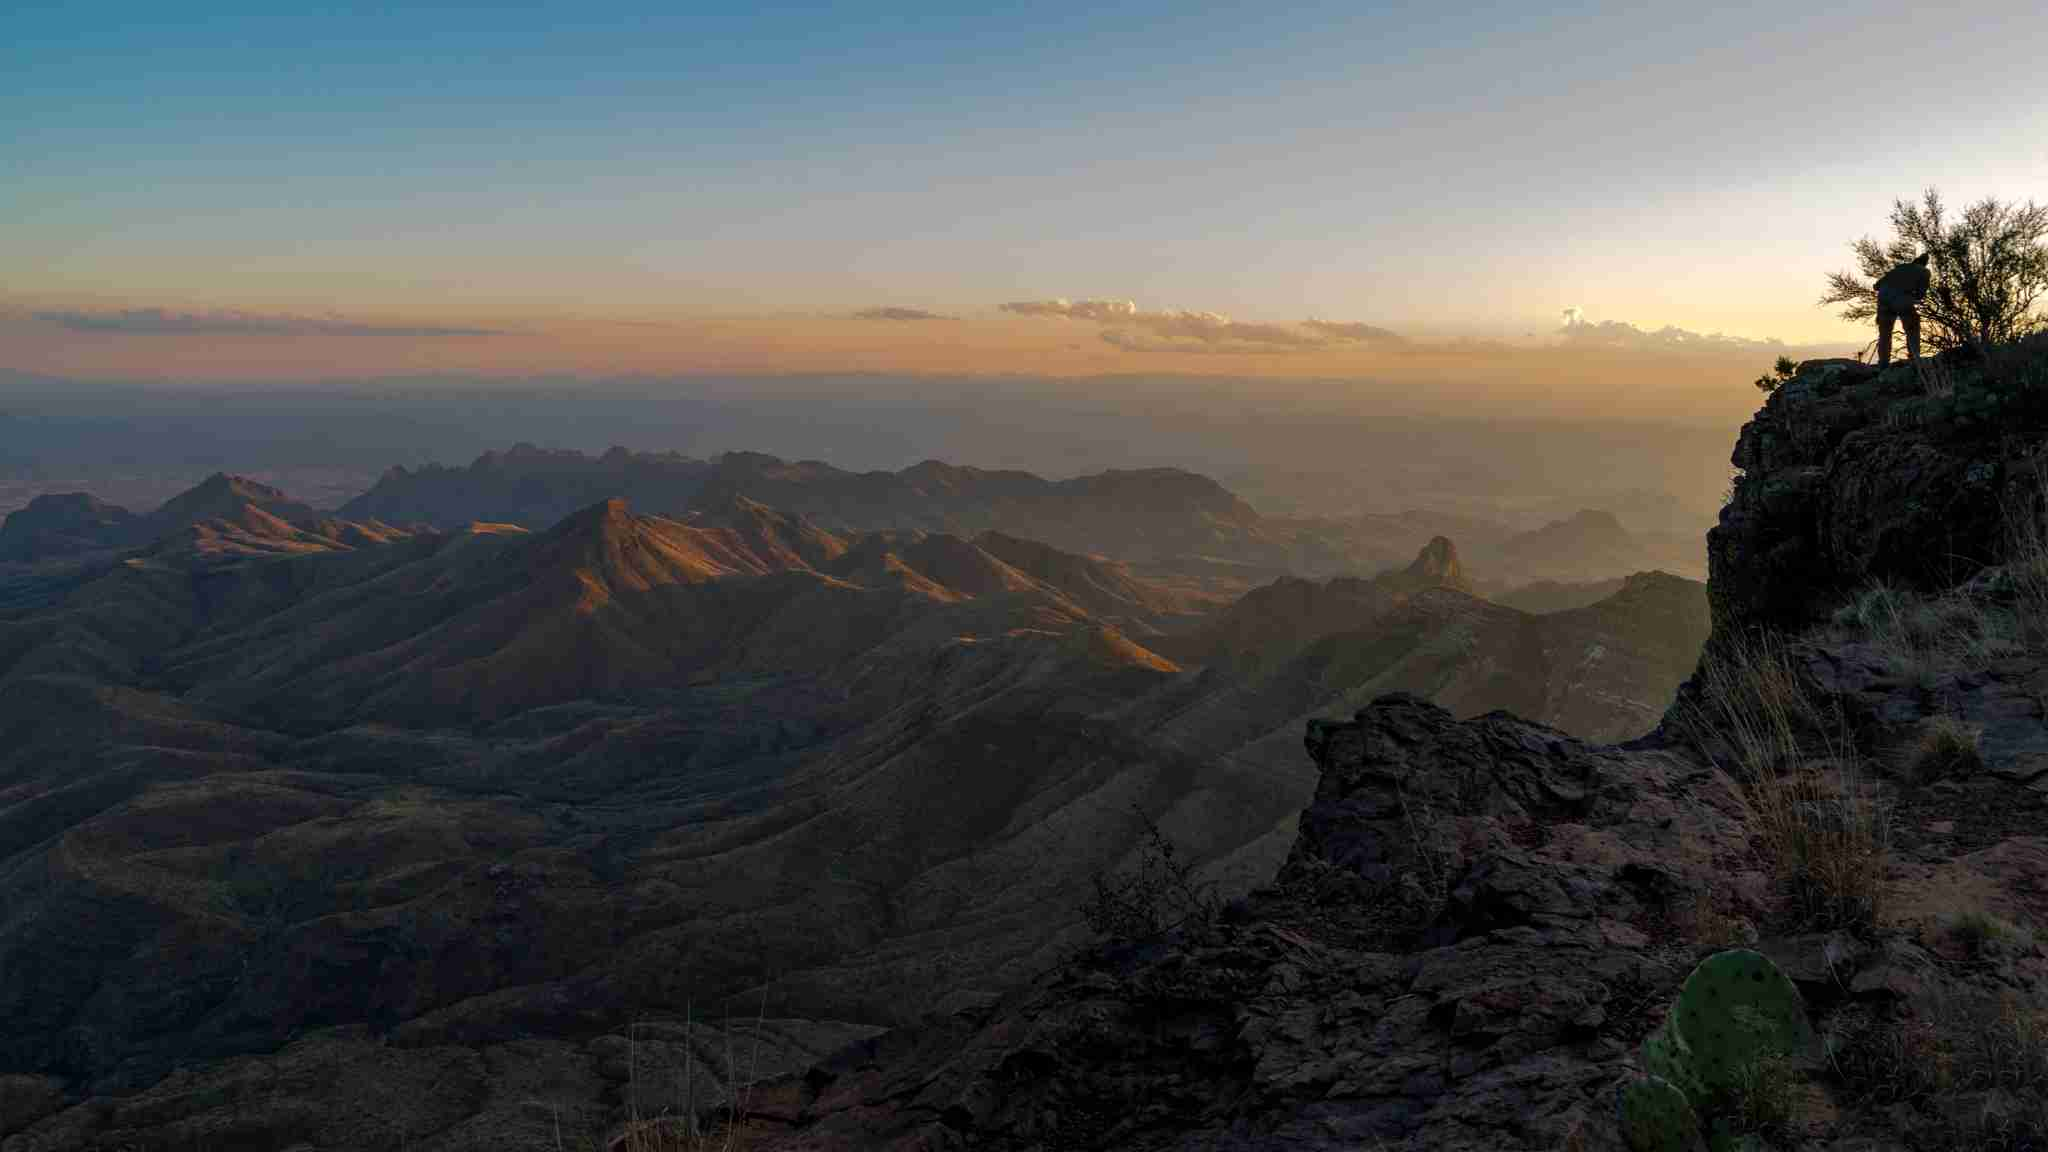 South Rim Trail overlook at Big Bend National Park (Photo by Wyatt Smith/TPG)